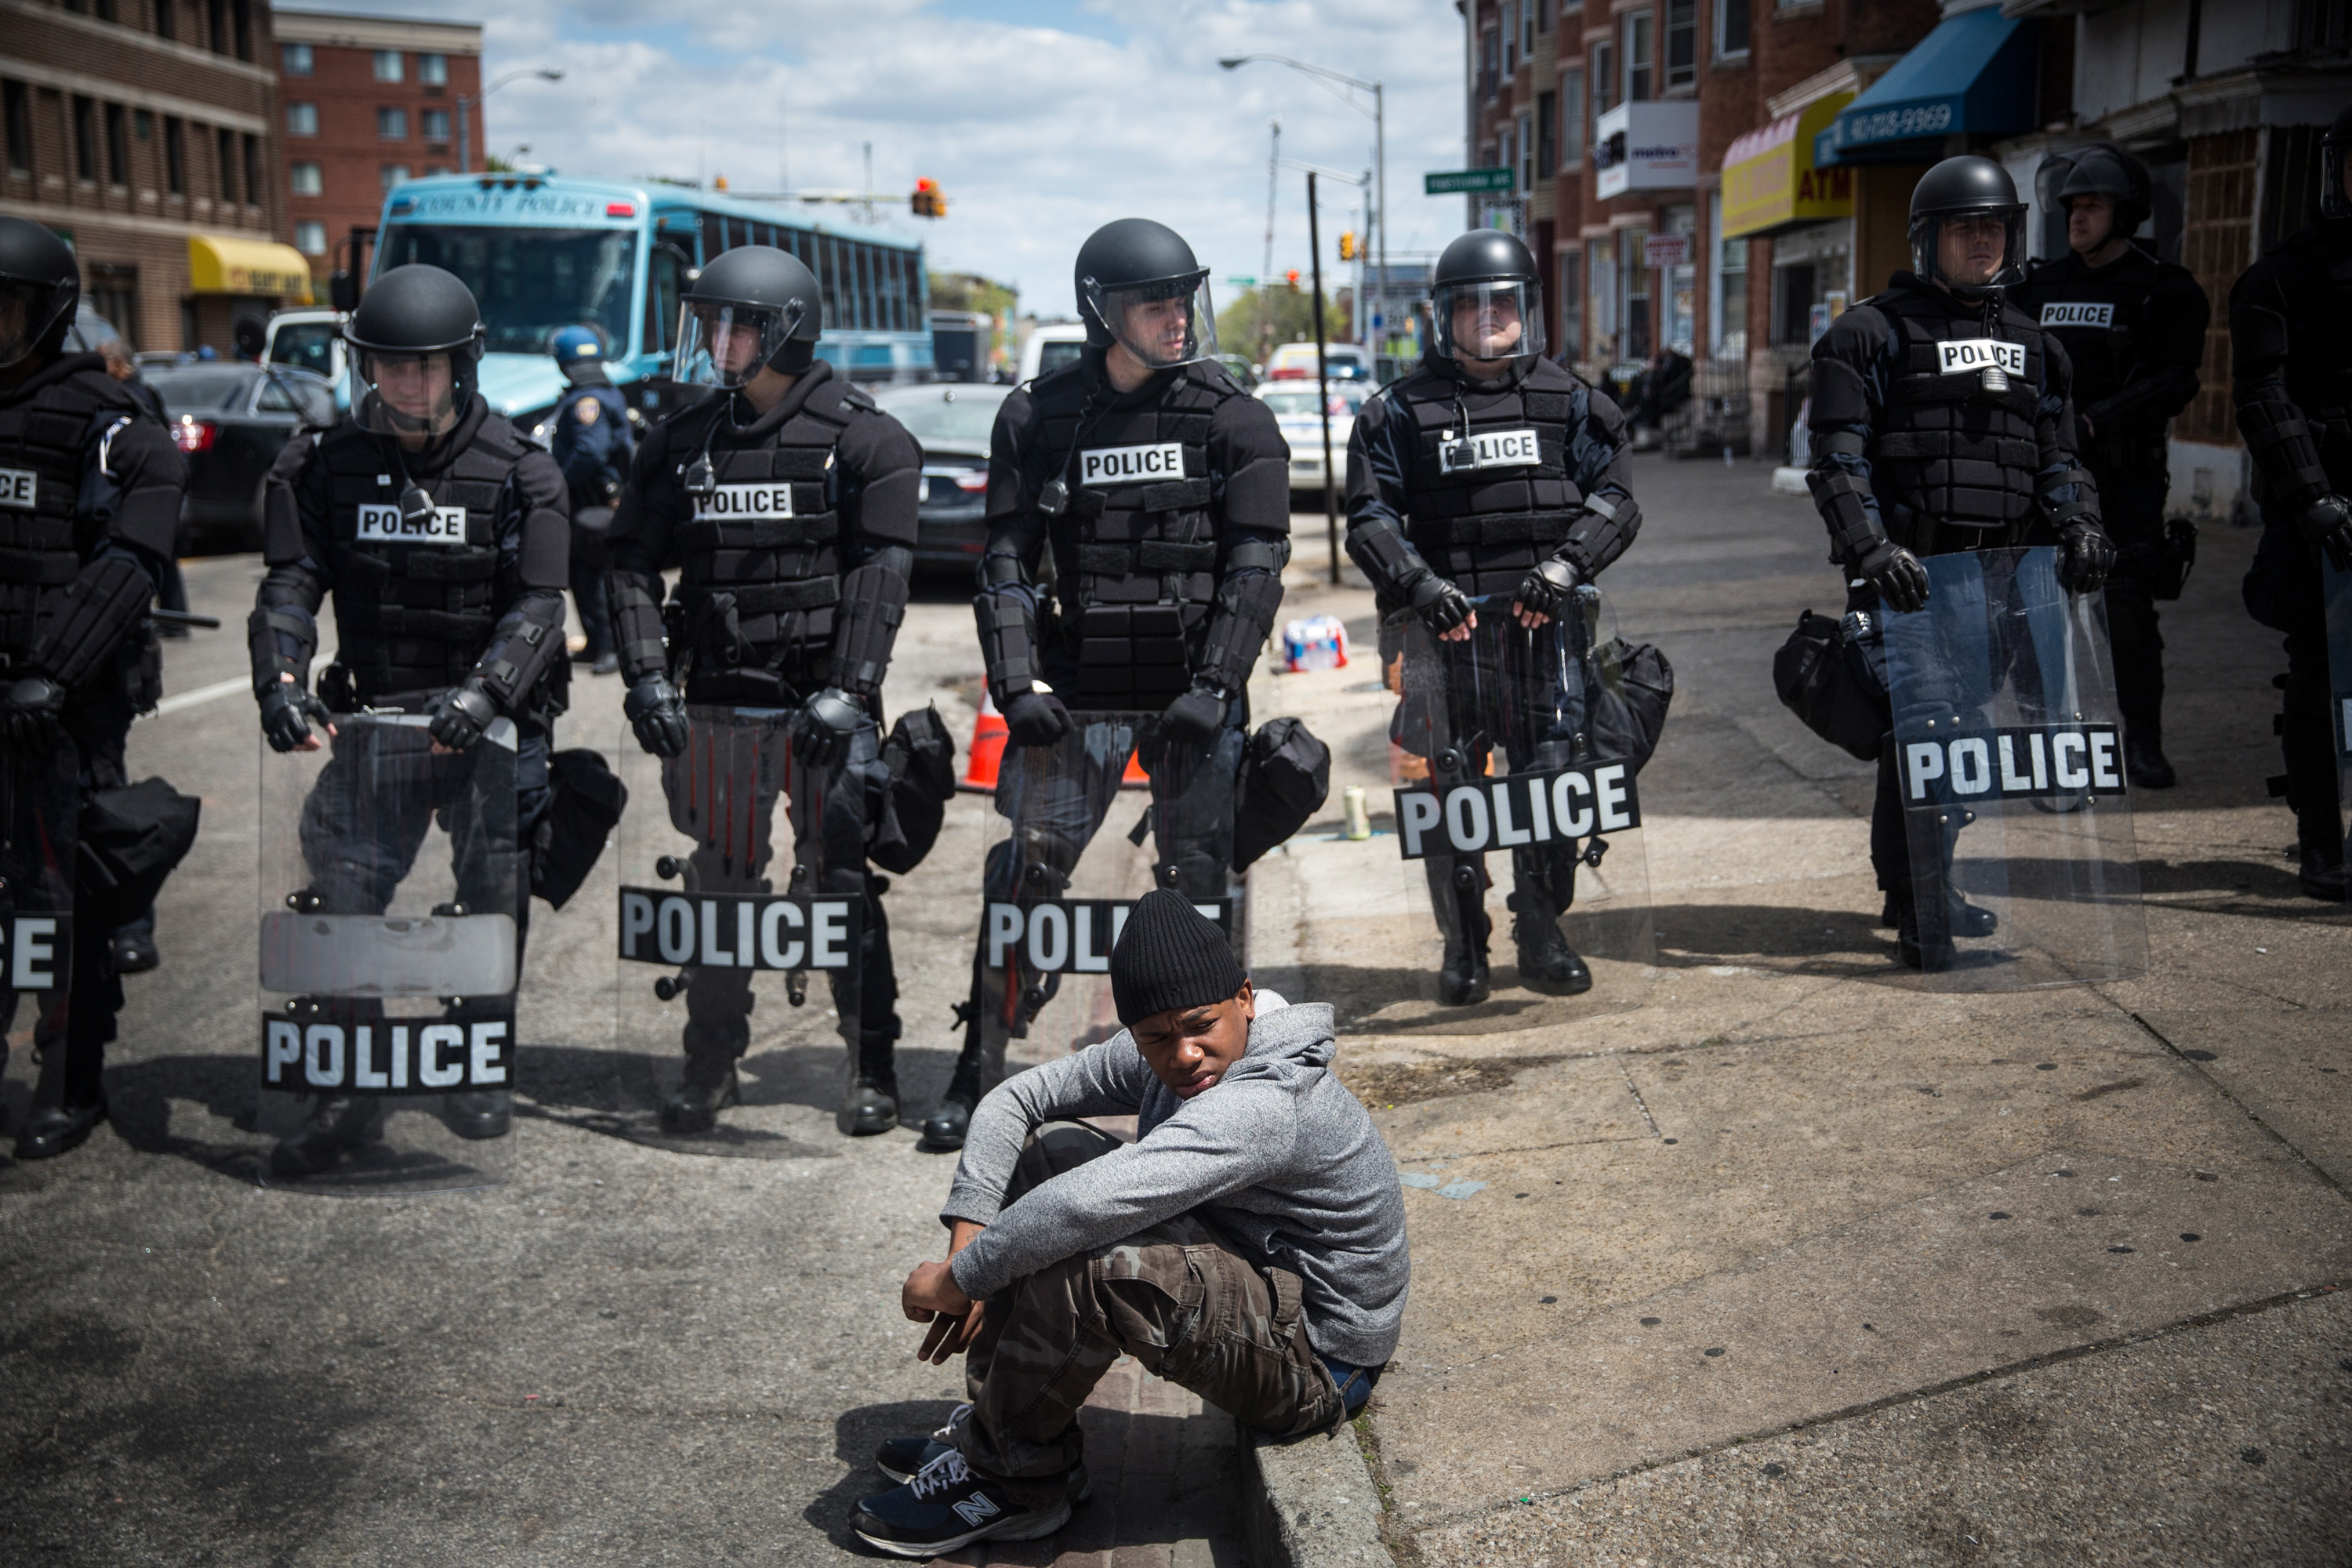 BALTIMORE, MD - APRIL 28: Daquan Green, age 17, sits on the curb while riot police stand guard near the CVS pharmacy that was set on fire yesterday during rioting after the funeral of Freddie Gray, on April 28, 2015 in Baltimore, Maryland. Gray, 25, was arrested for possessing a switch blade knife April 12 outside the Gilmor Houses housing project on Baltimore's west side. According to his attorney, Gray died a week later in the hospital from a severe spinal cord injury he received while in police custody. (Photo by Andrew Burton/Getty Images)